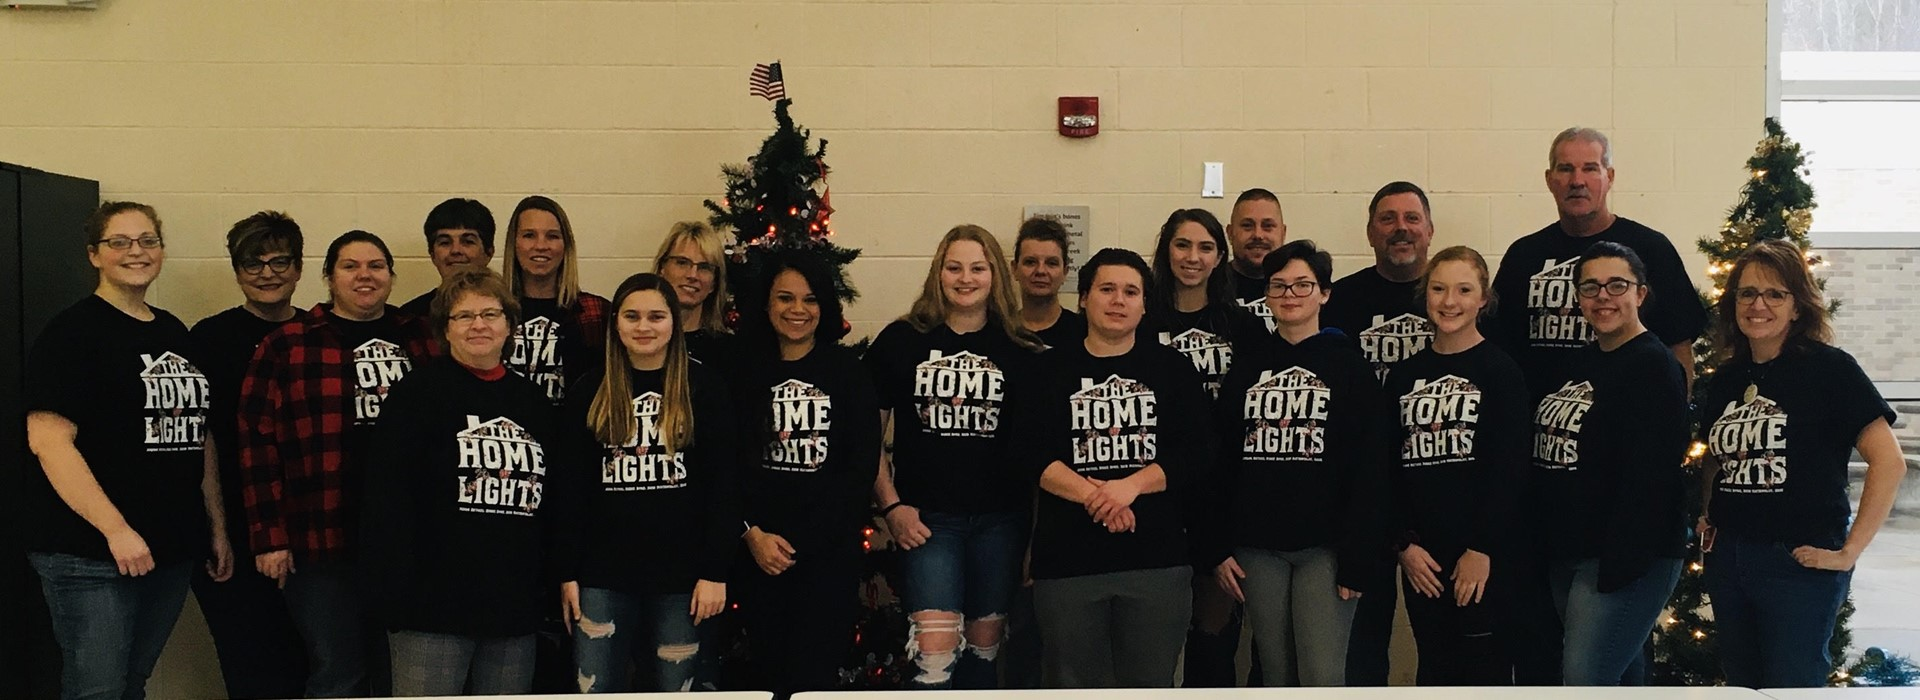 Frontier supporting Haven Allen's Home of Lights